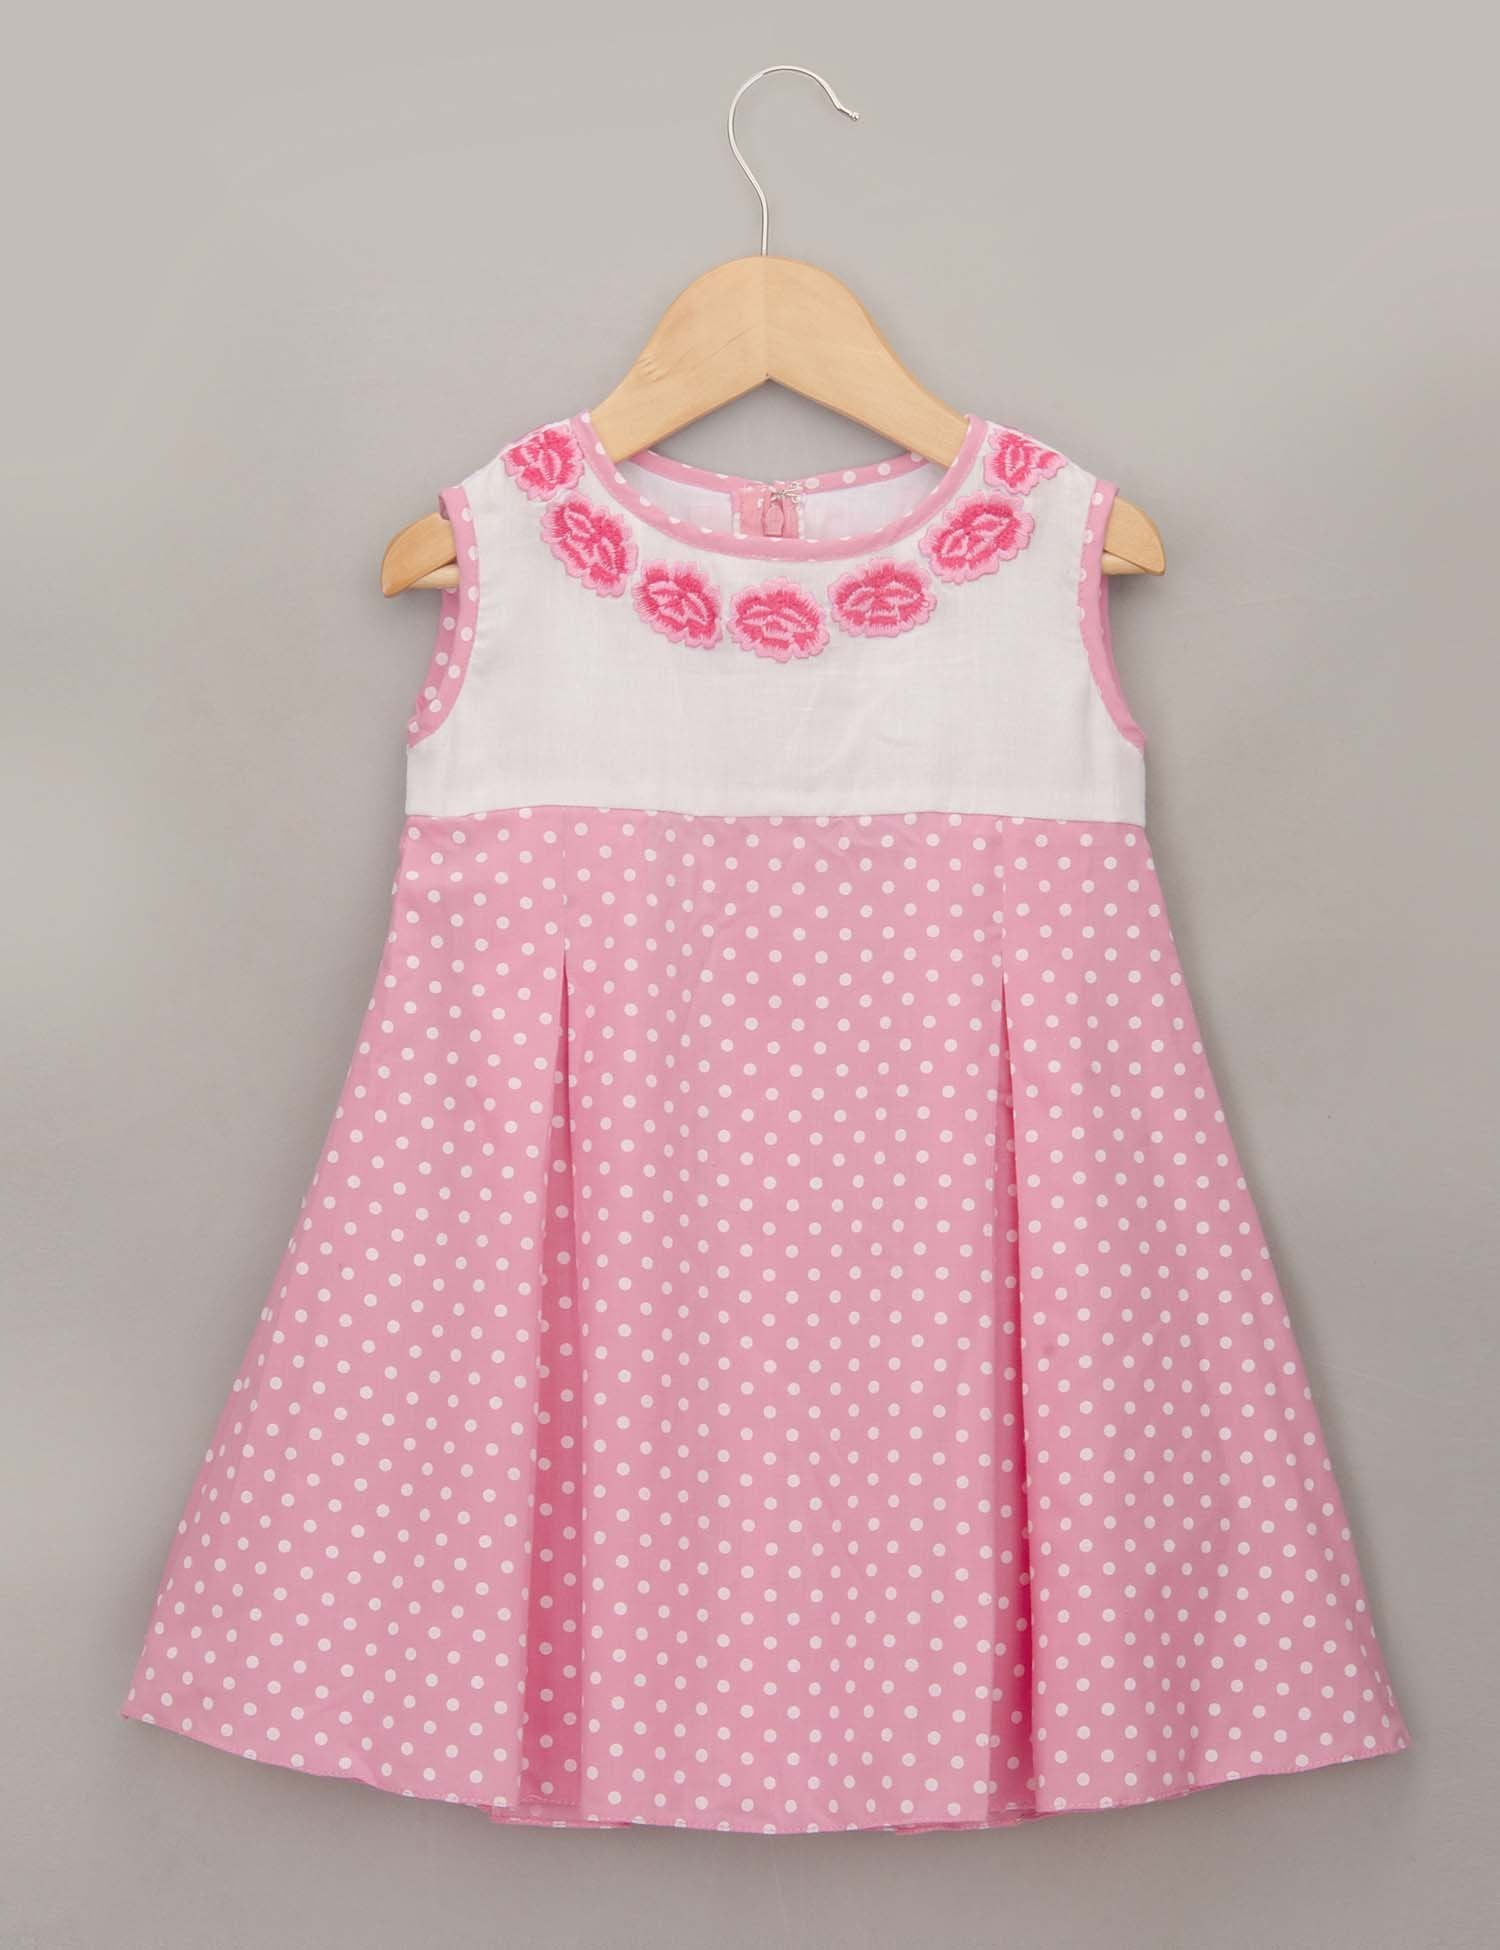 Sleeveless Pink Polka Dot Dress